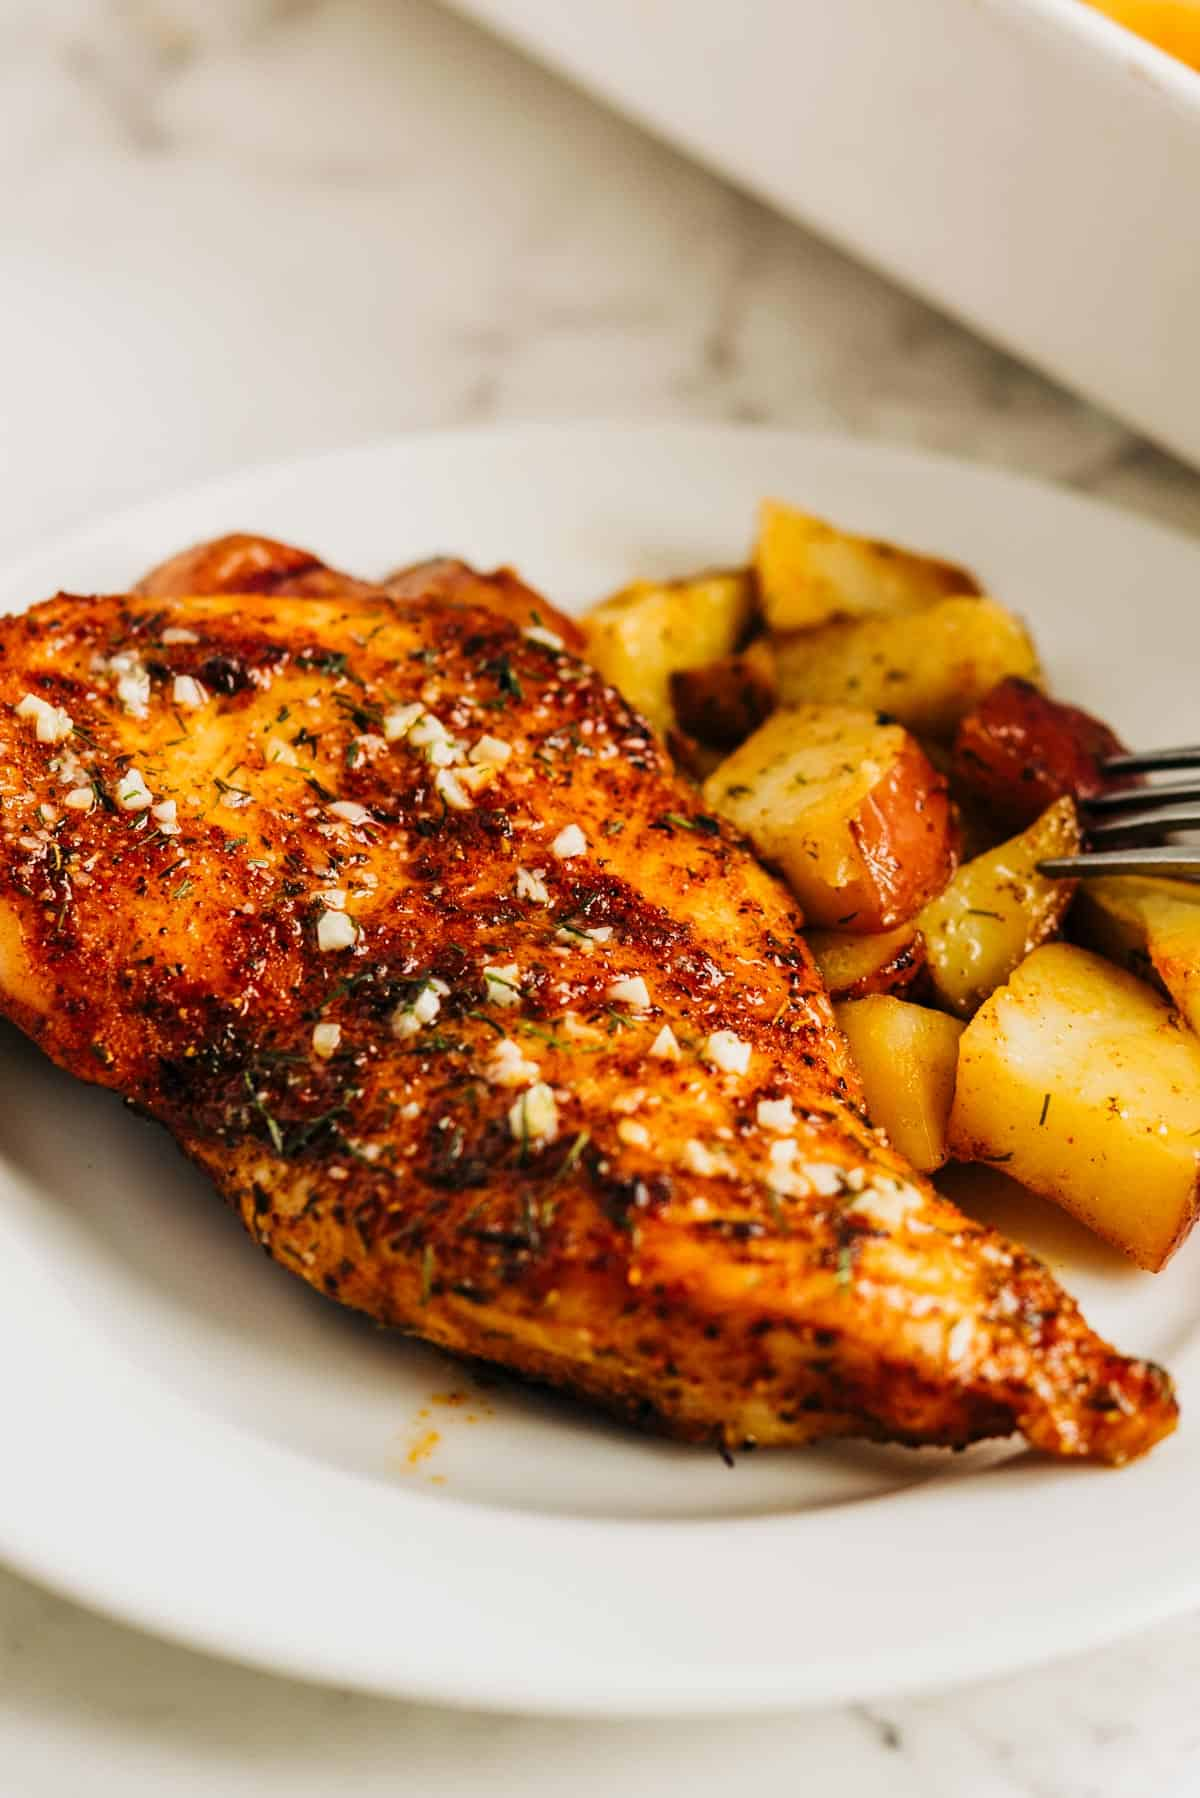 Baked chicken breast on a white plate